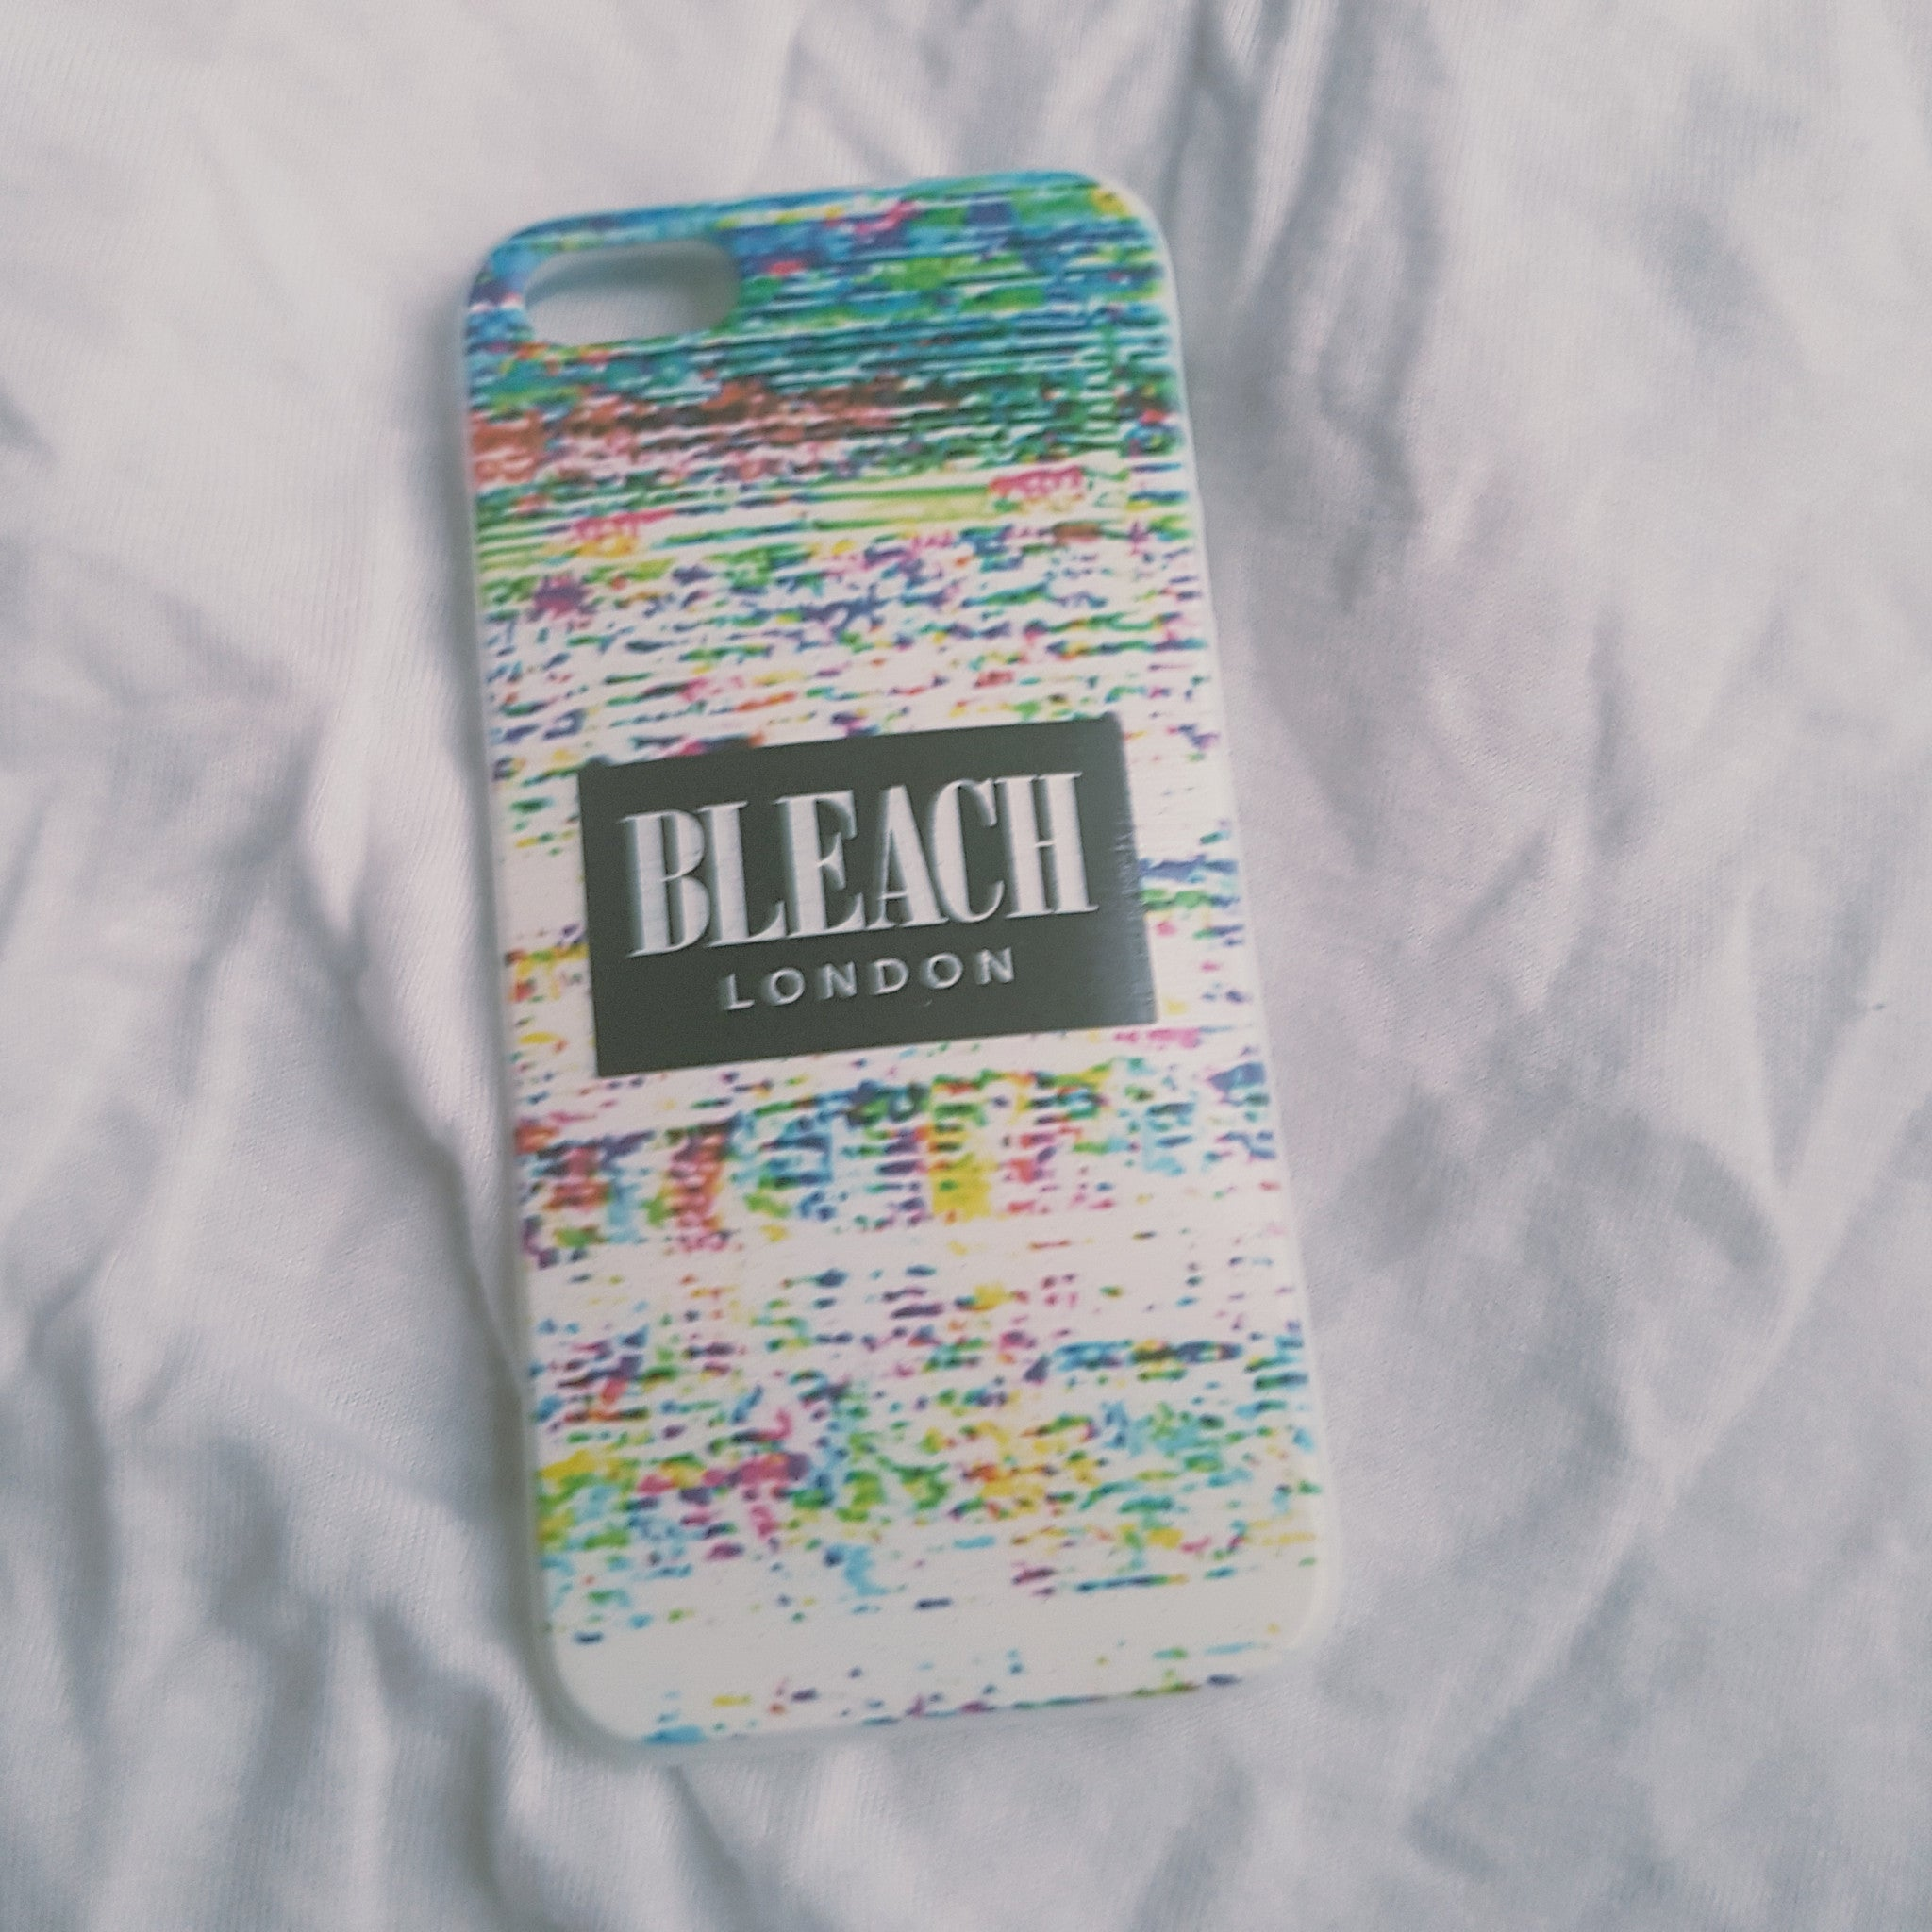 Bleach London iPhone 5/5s Case